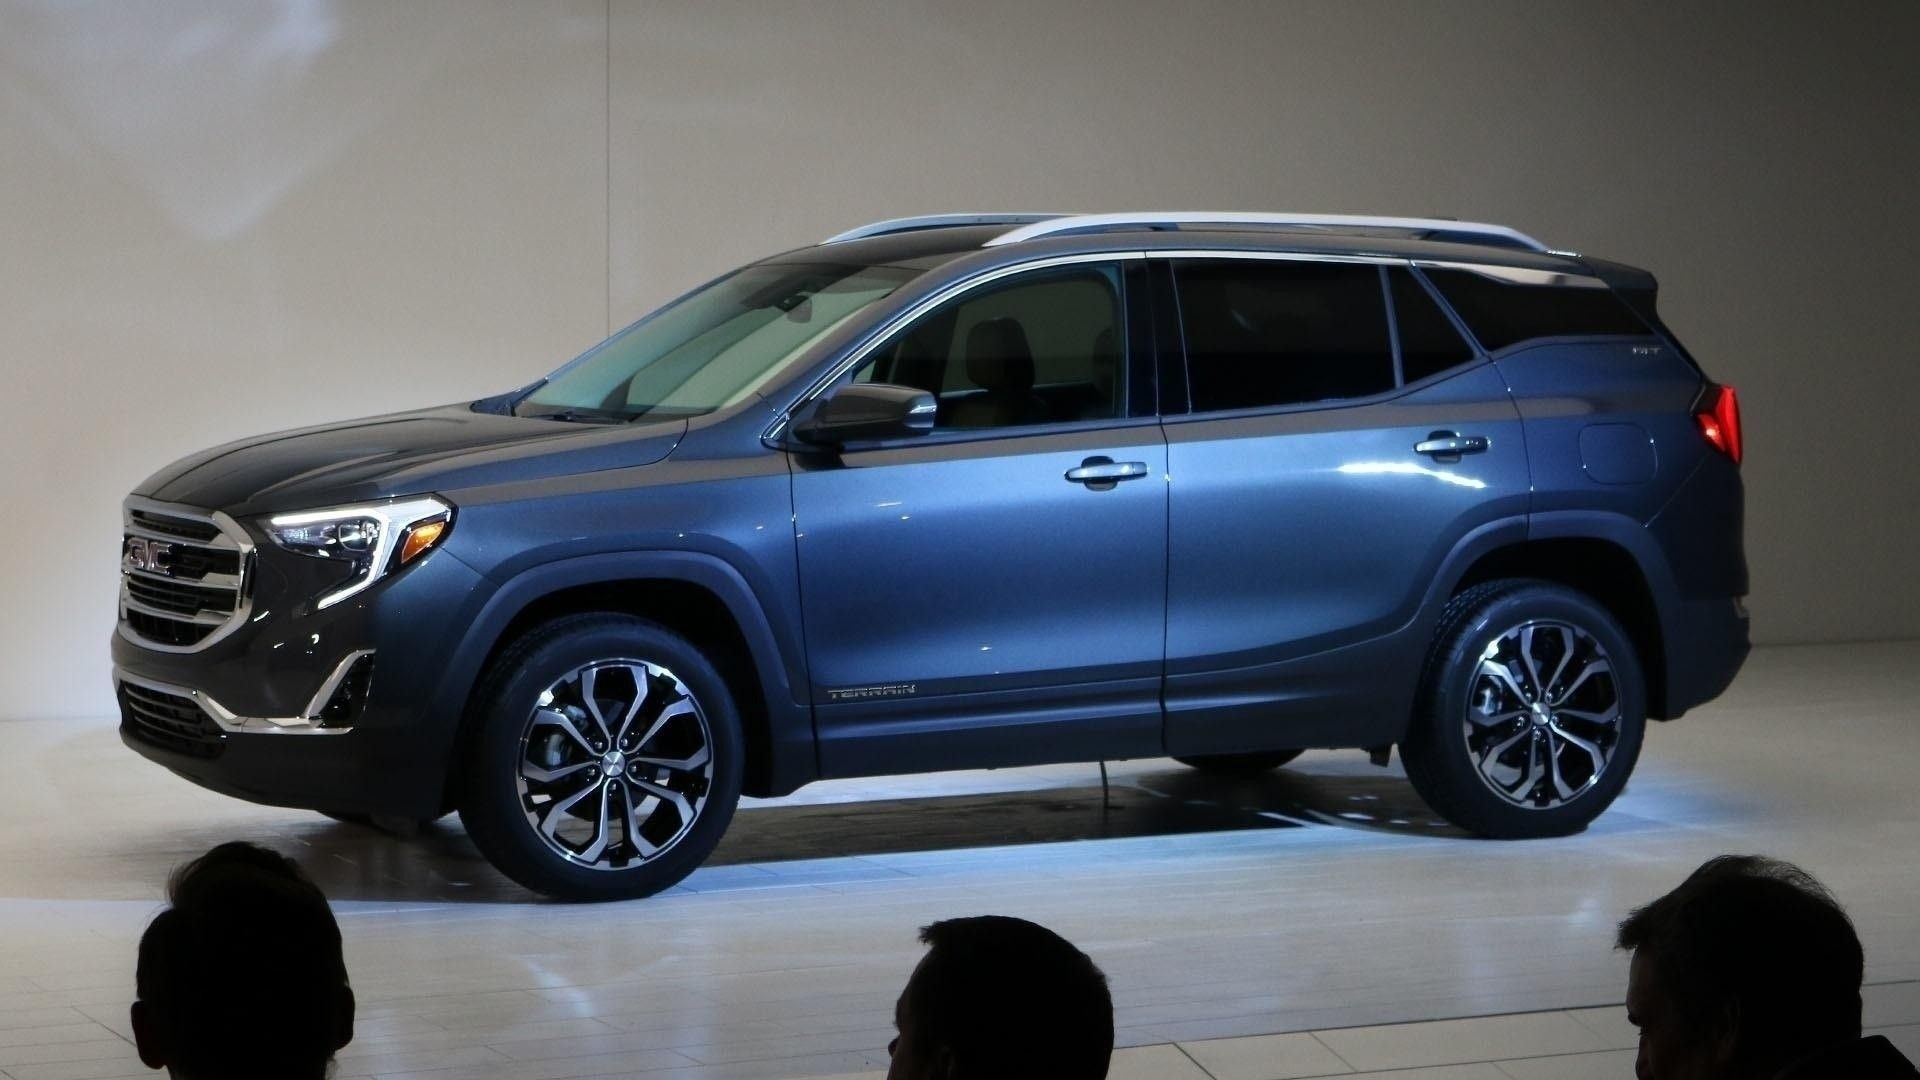 2019 Gmc Acadia Colors New Review Gmc Fuel Economy Gmc Terrain